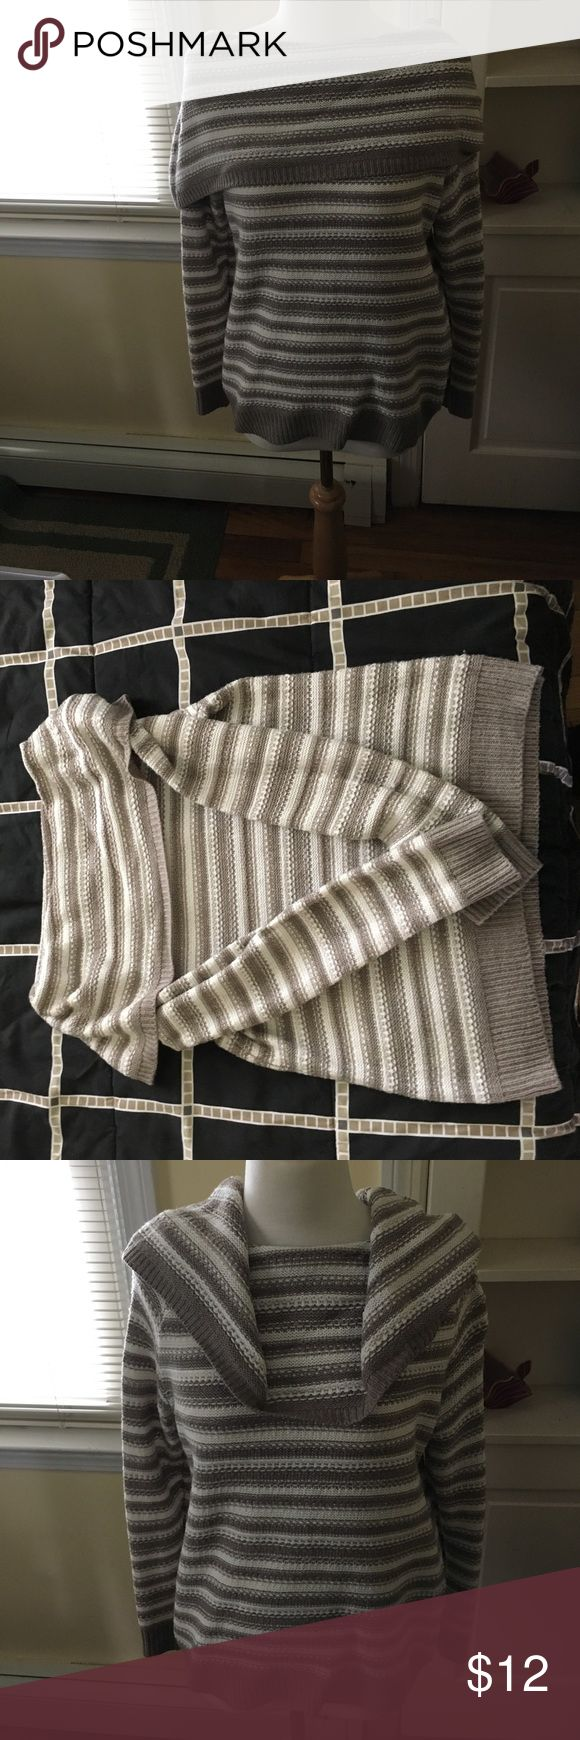 New York and Company Cowl Neck Sweater New York and Company Cowl Neck Sweater. Size medium. Excellent condition. Brown and cream stripes. New York & Company Sweaters Cowl & Turtlenecks